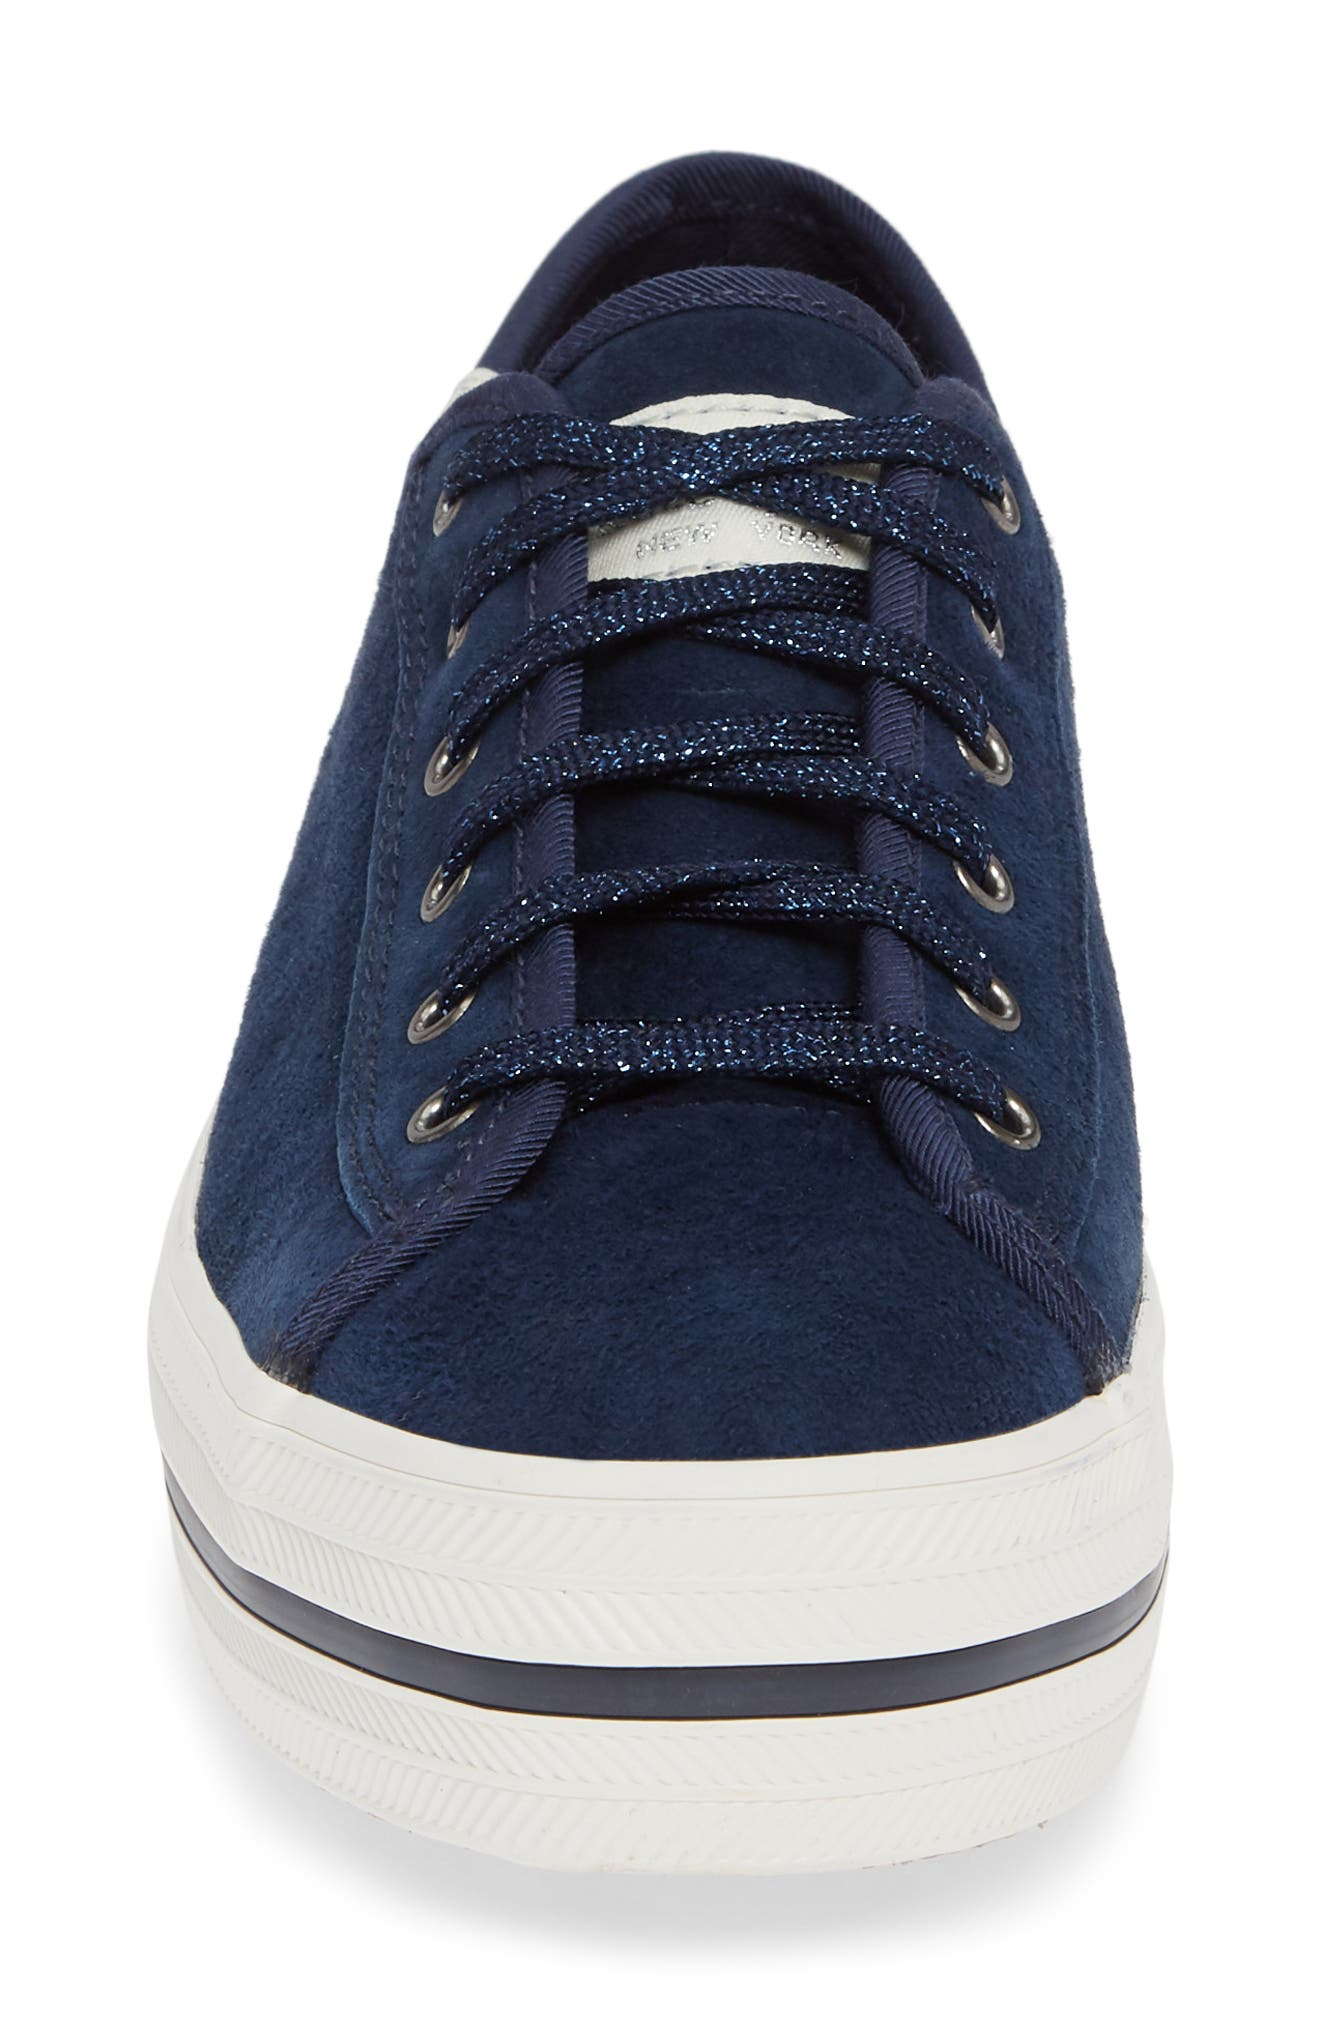 KEDS<SUP>®</SUP> FOR KATE SPADE NEW YORK, Keds<sup>®</sup> x kate spade new york triple kicks platform sneaker, Alternate thumbnail 4, color, NAVY SUEDE